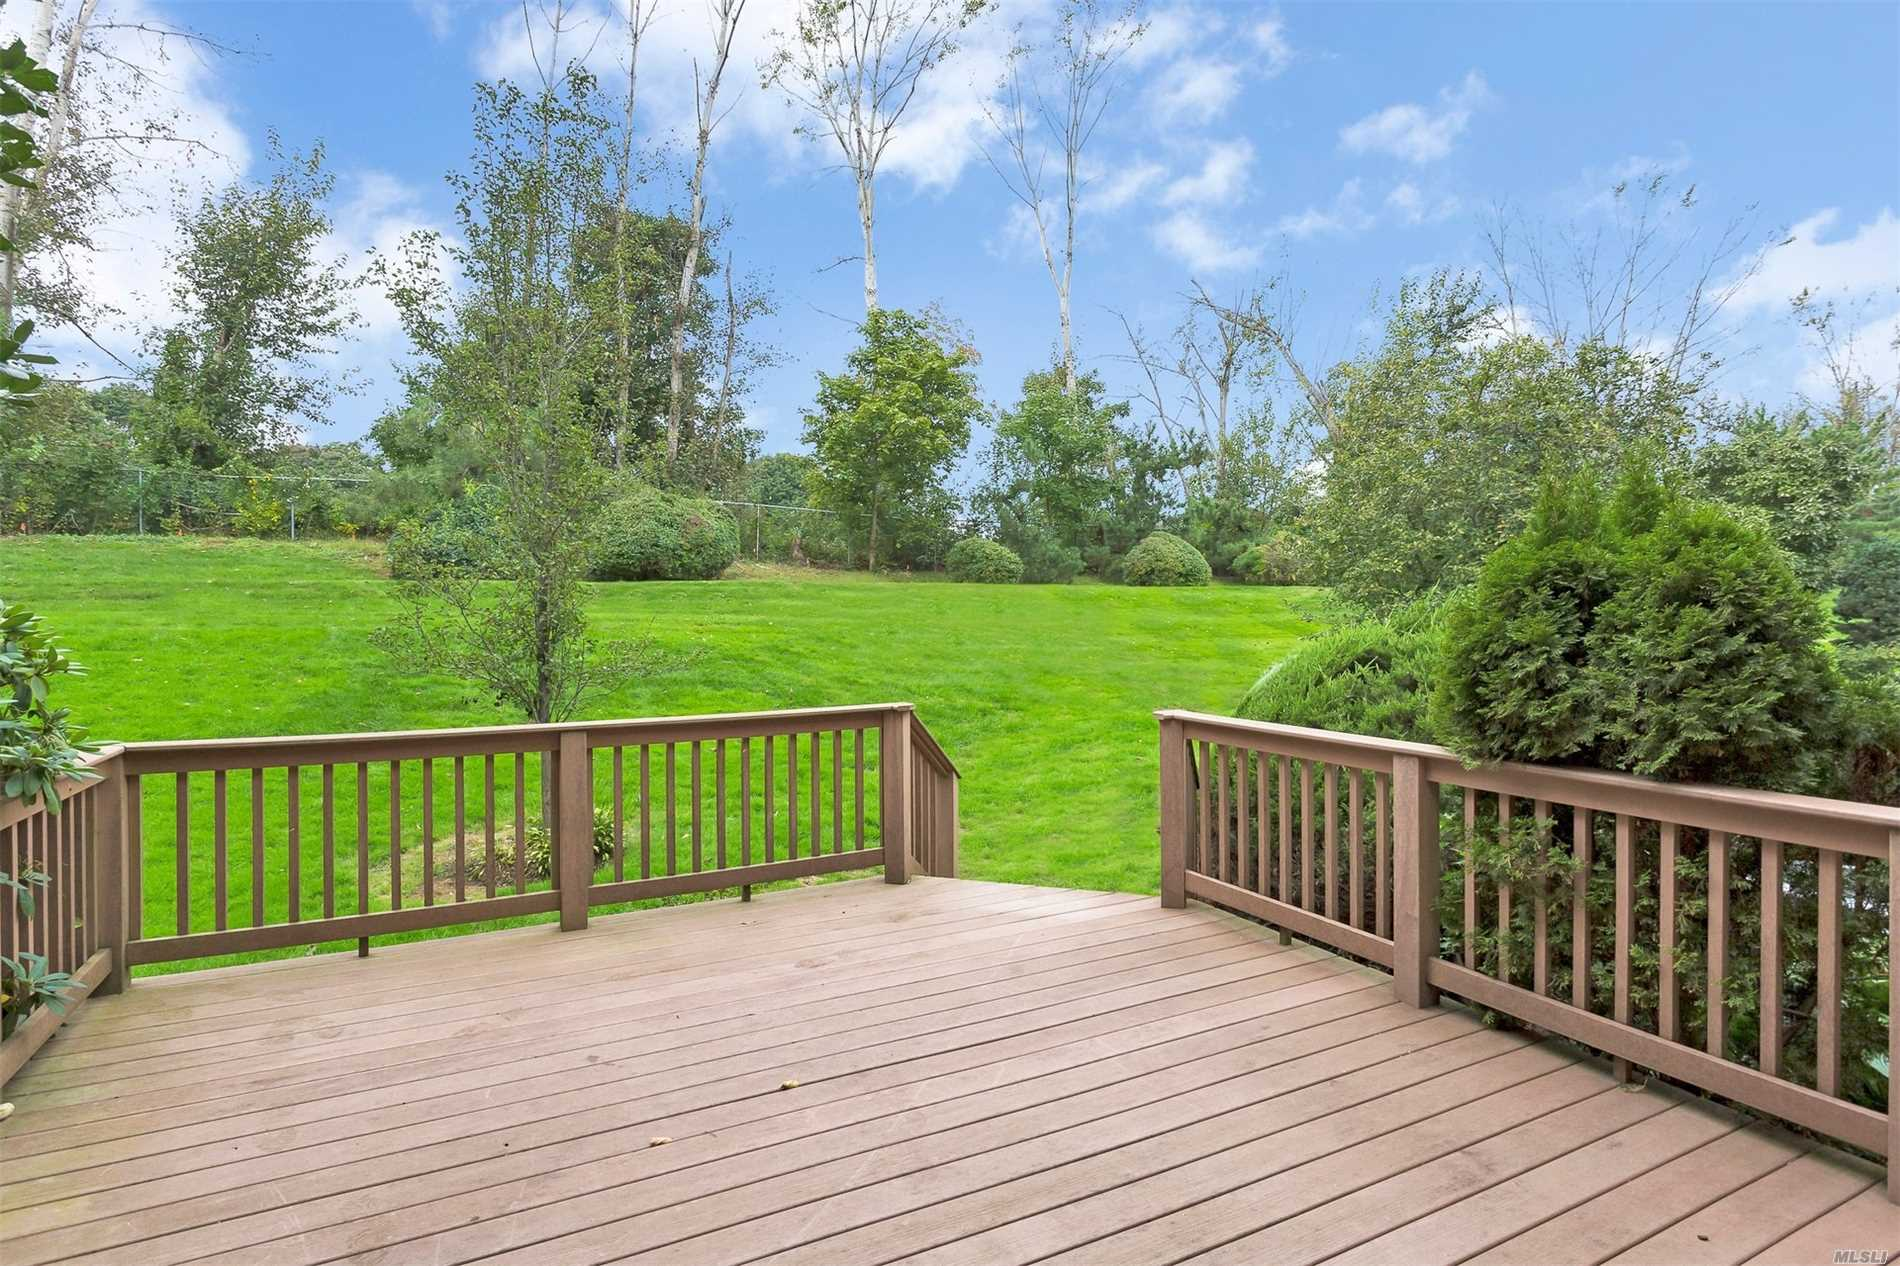 Beautiful End Unit On Cul-De-Sac In Desirable Gated Community The Knolls, Technically Co-Ops With Condo Rules.Sunlit 3-Bedroom 3.5-Bath Home Offers 2688 Sq Ft Plus 914 Sq Ft Fin Finished Basement W/Fam Room, Guest Room, Laundry Room & Full Bath Plus 2 Wood-Burning Fireplaces, Cvac, Office & 2-Car Garage. Boasts A Spacious Master Ste W/Walk-In Closet & Large Master Bth. Superior Location W/ Extra-Private Views Of Lawn & Golf Course! Buyer Pays $5K Transfer Tax. Taxes & Maint Are Monthly